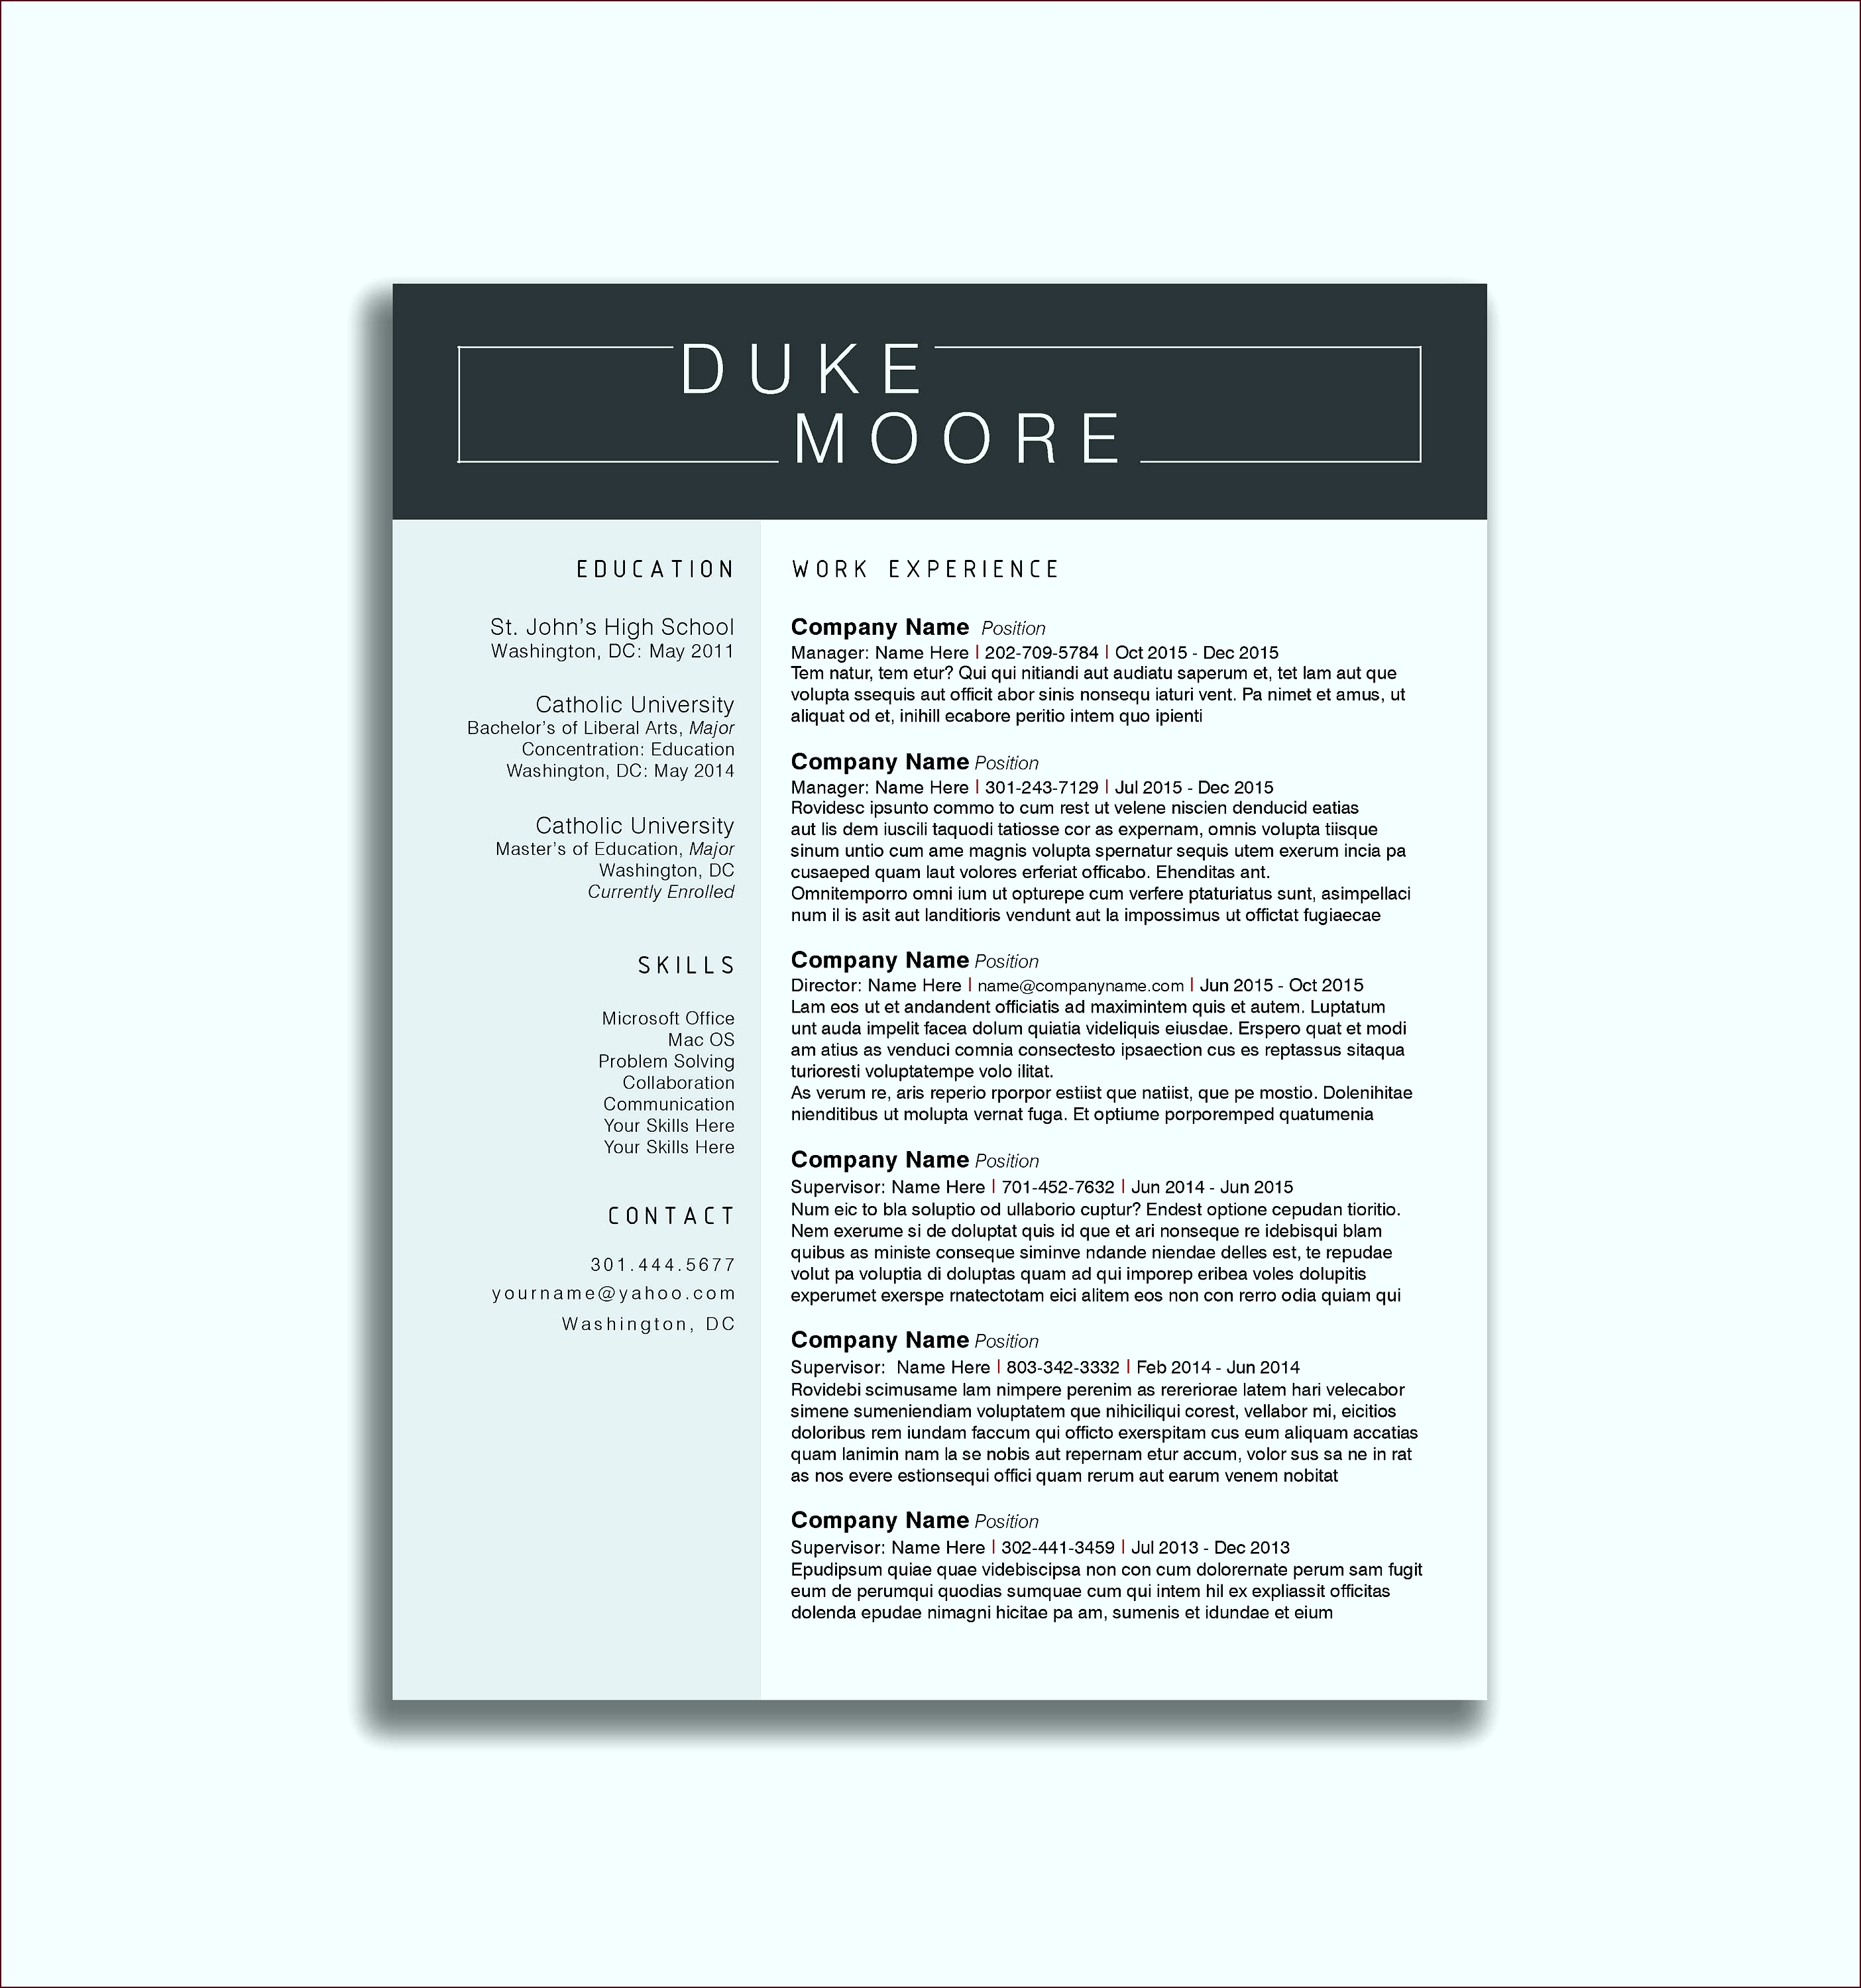 Resume Writing Examples Beautiful Resume Cover Letter Template Docx Best Creative Resume Template aurur